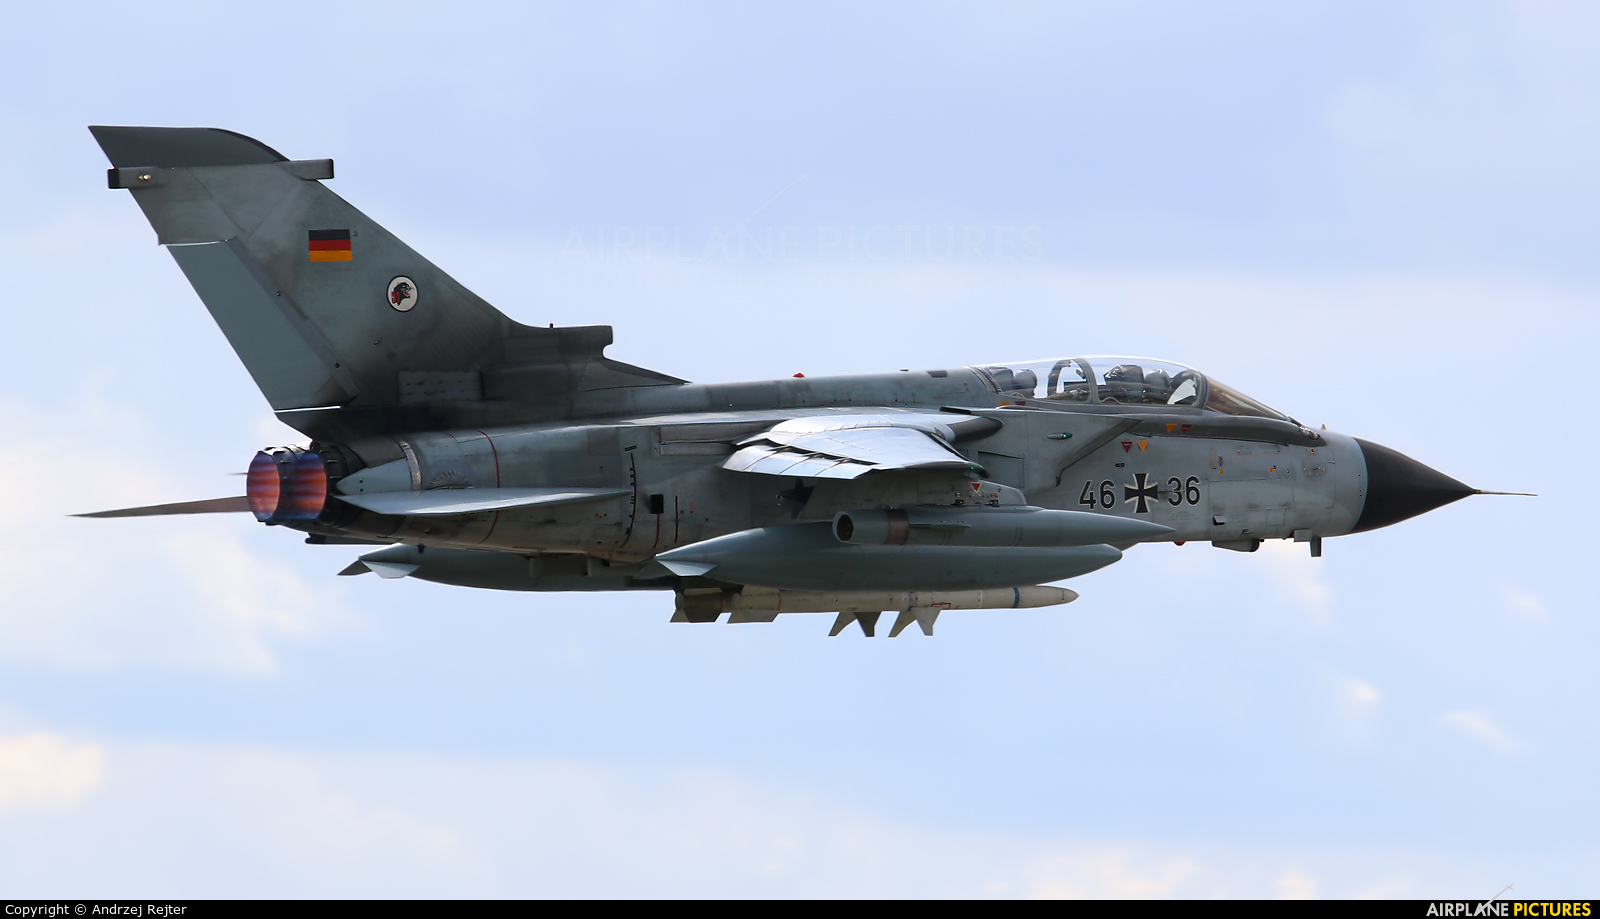 Germany - Air Force 46+36 aircraft at Rostock - Laage